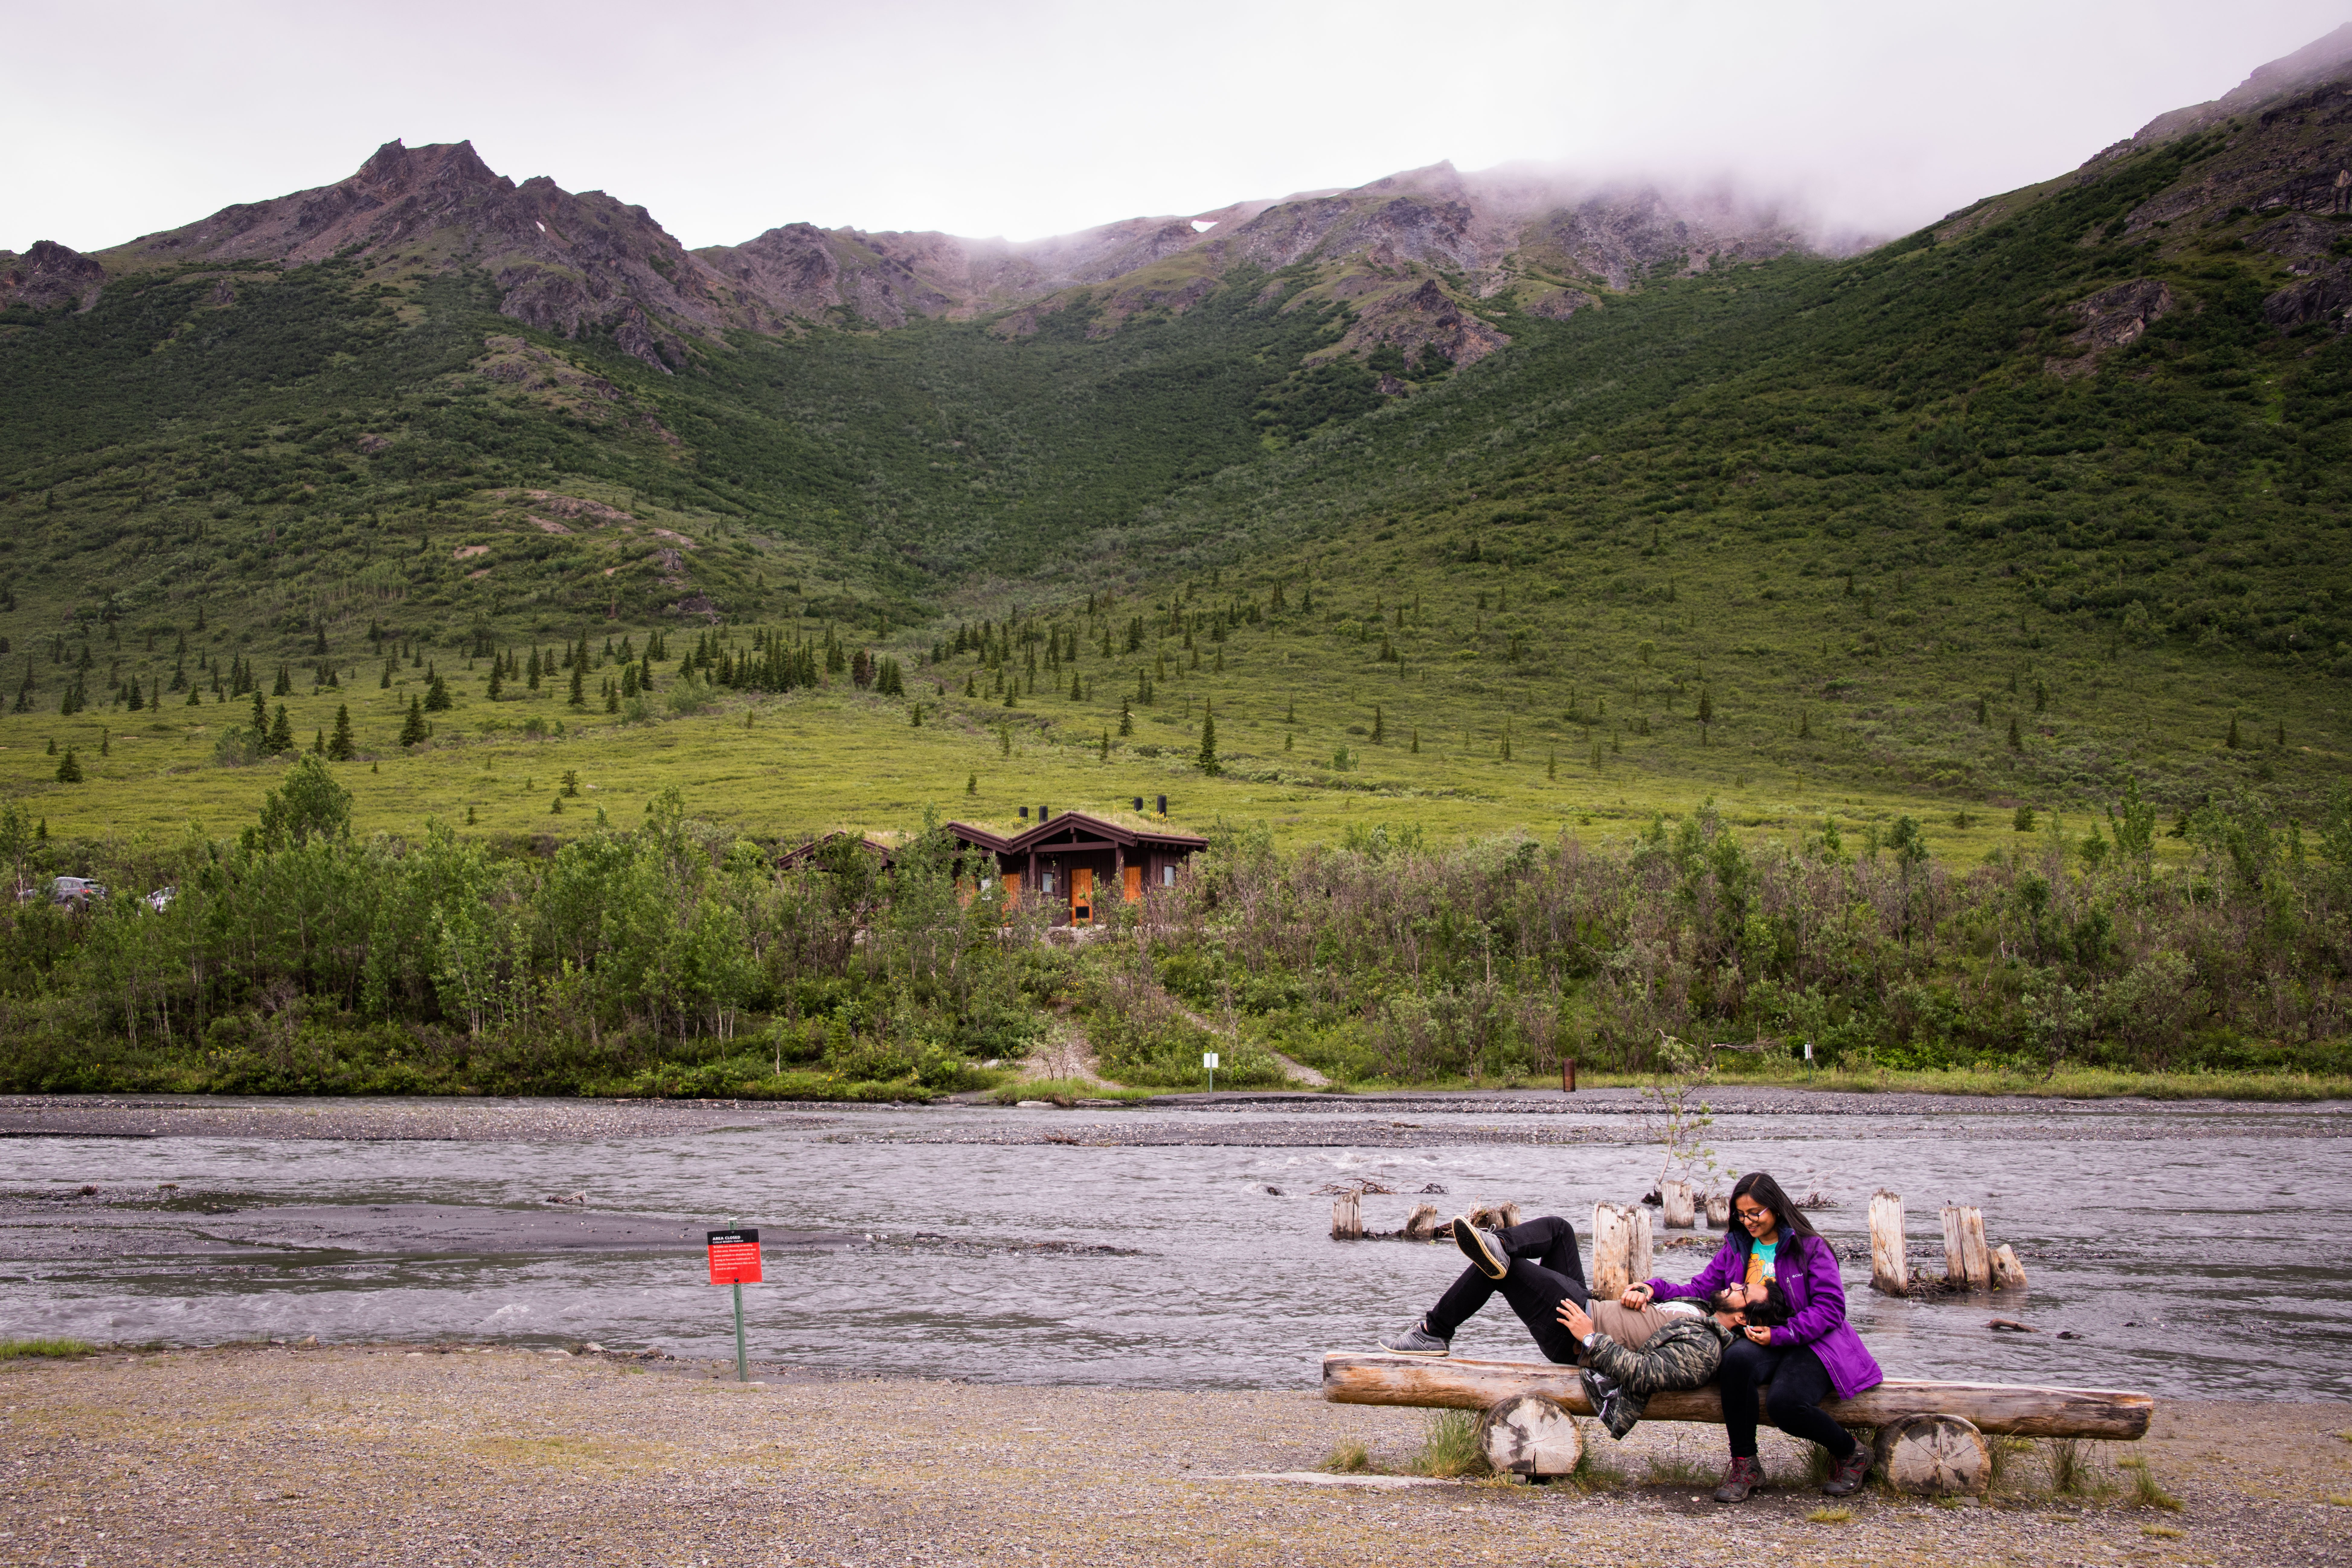 Couple photography at 15 mile stop in Denali National Park